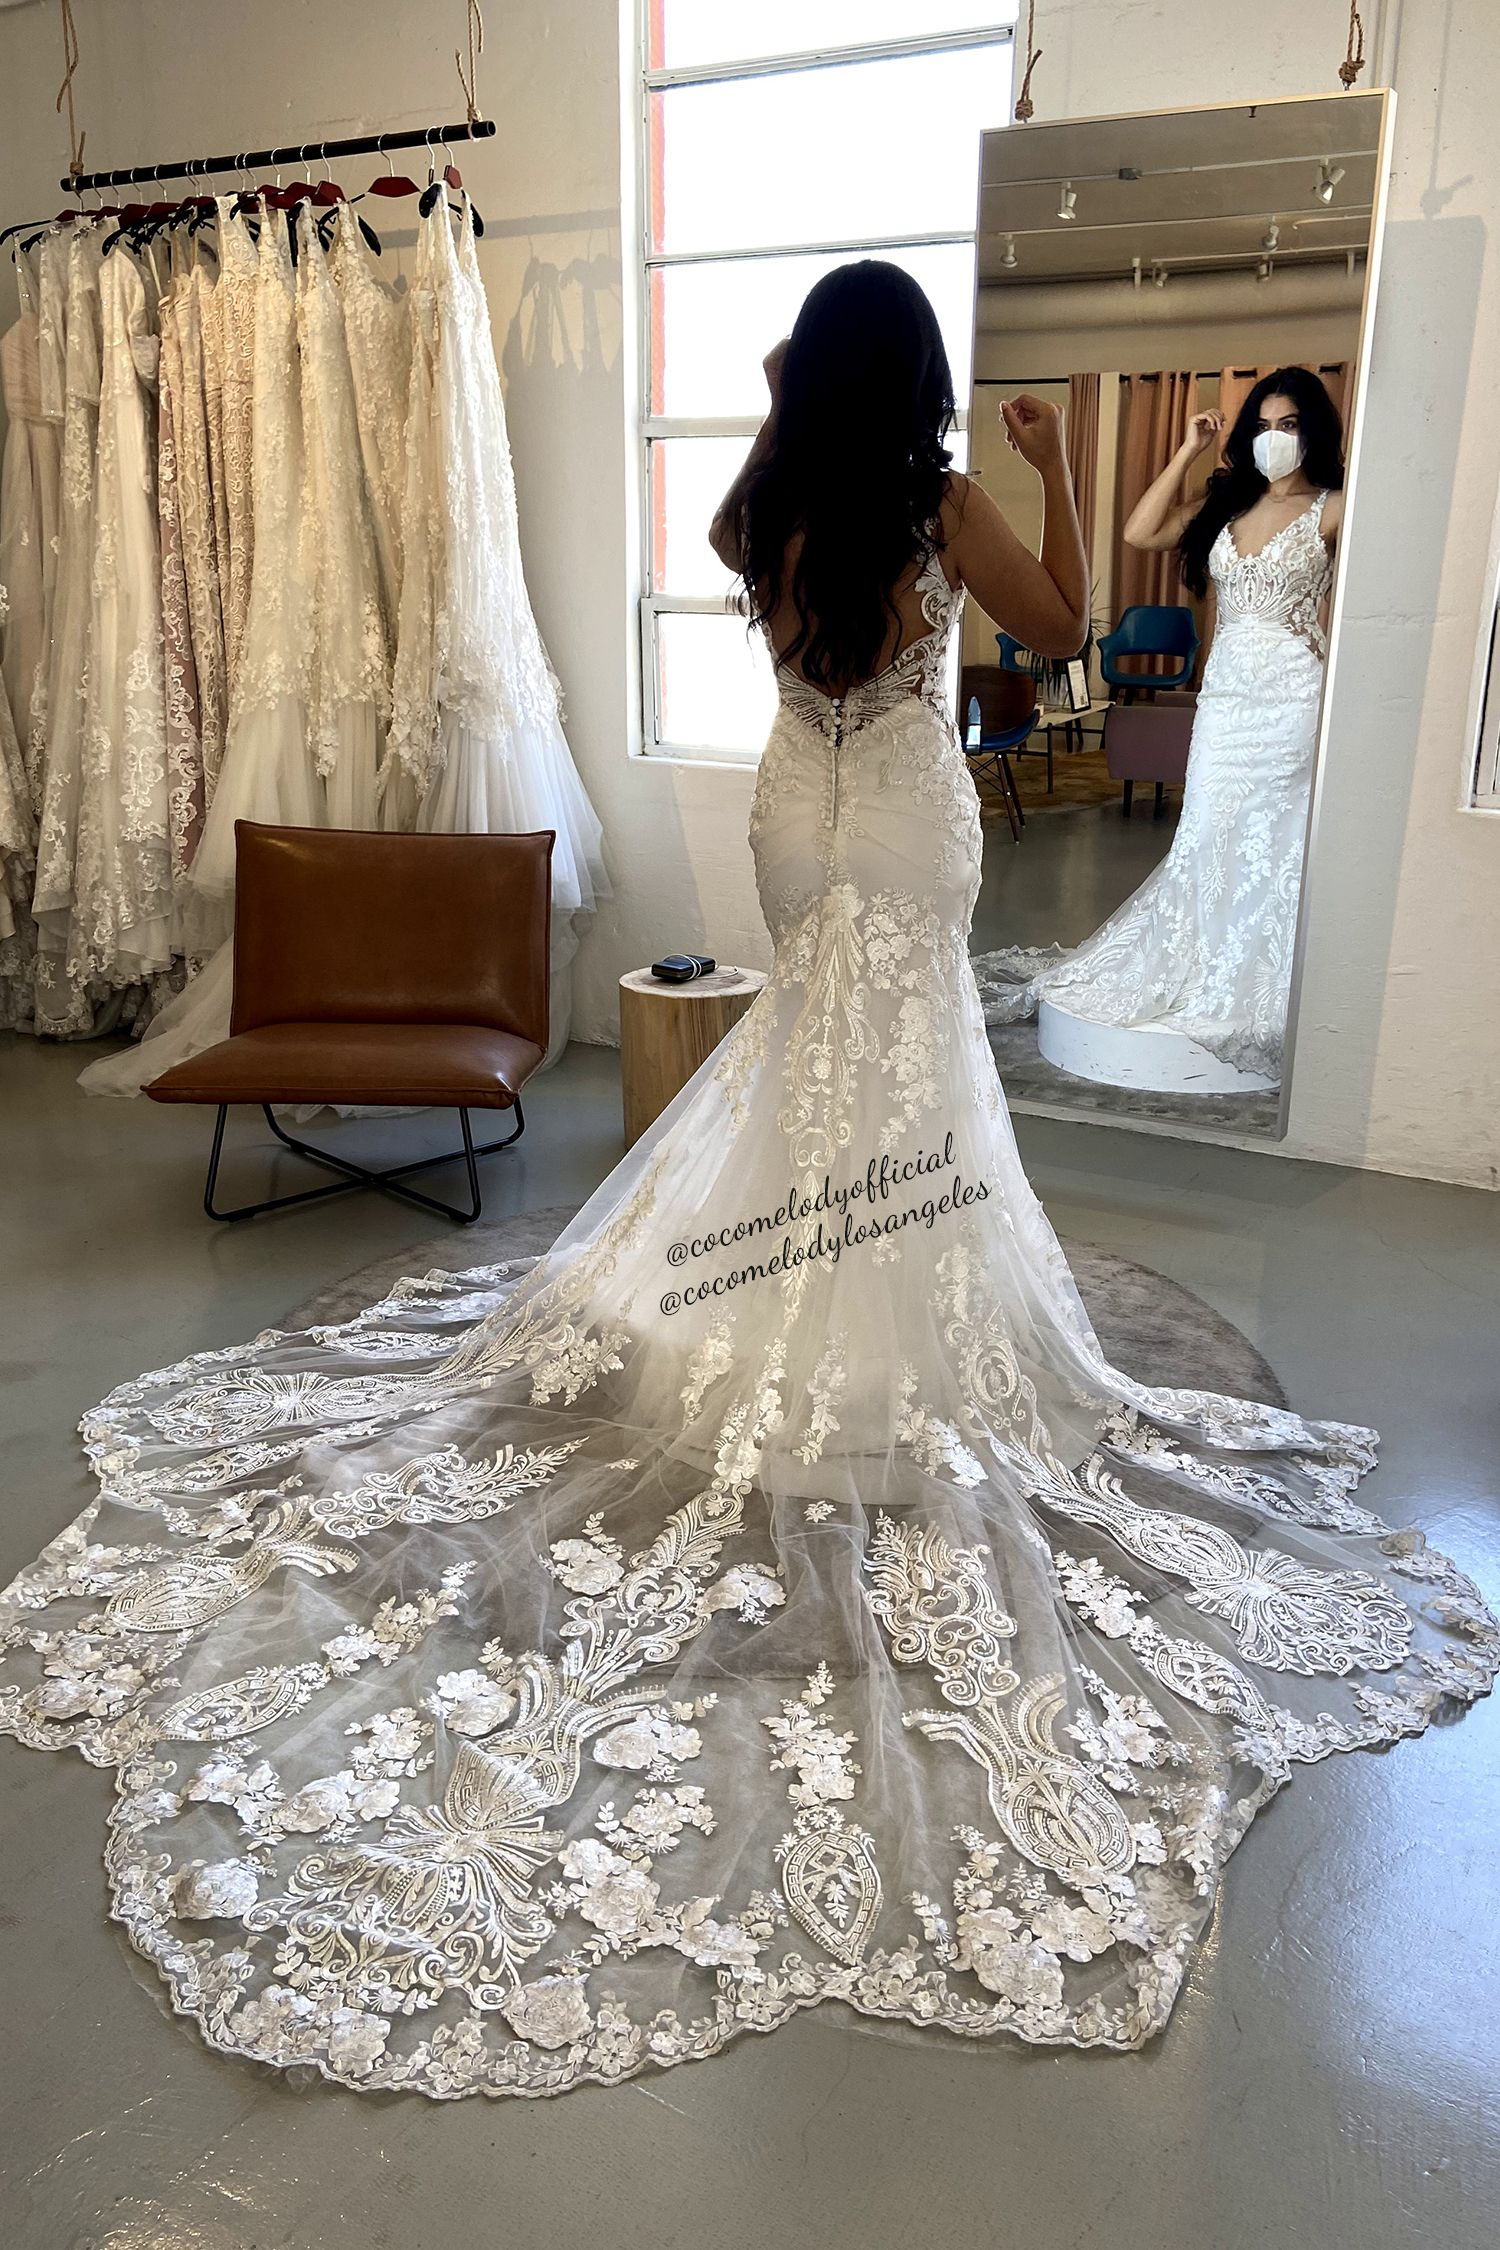 Visit Cocomelody Bridal Stores For A Great Dress Fitting In 2020 Wedding Dresses Bridal Wedding Dresses Lace